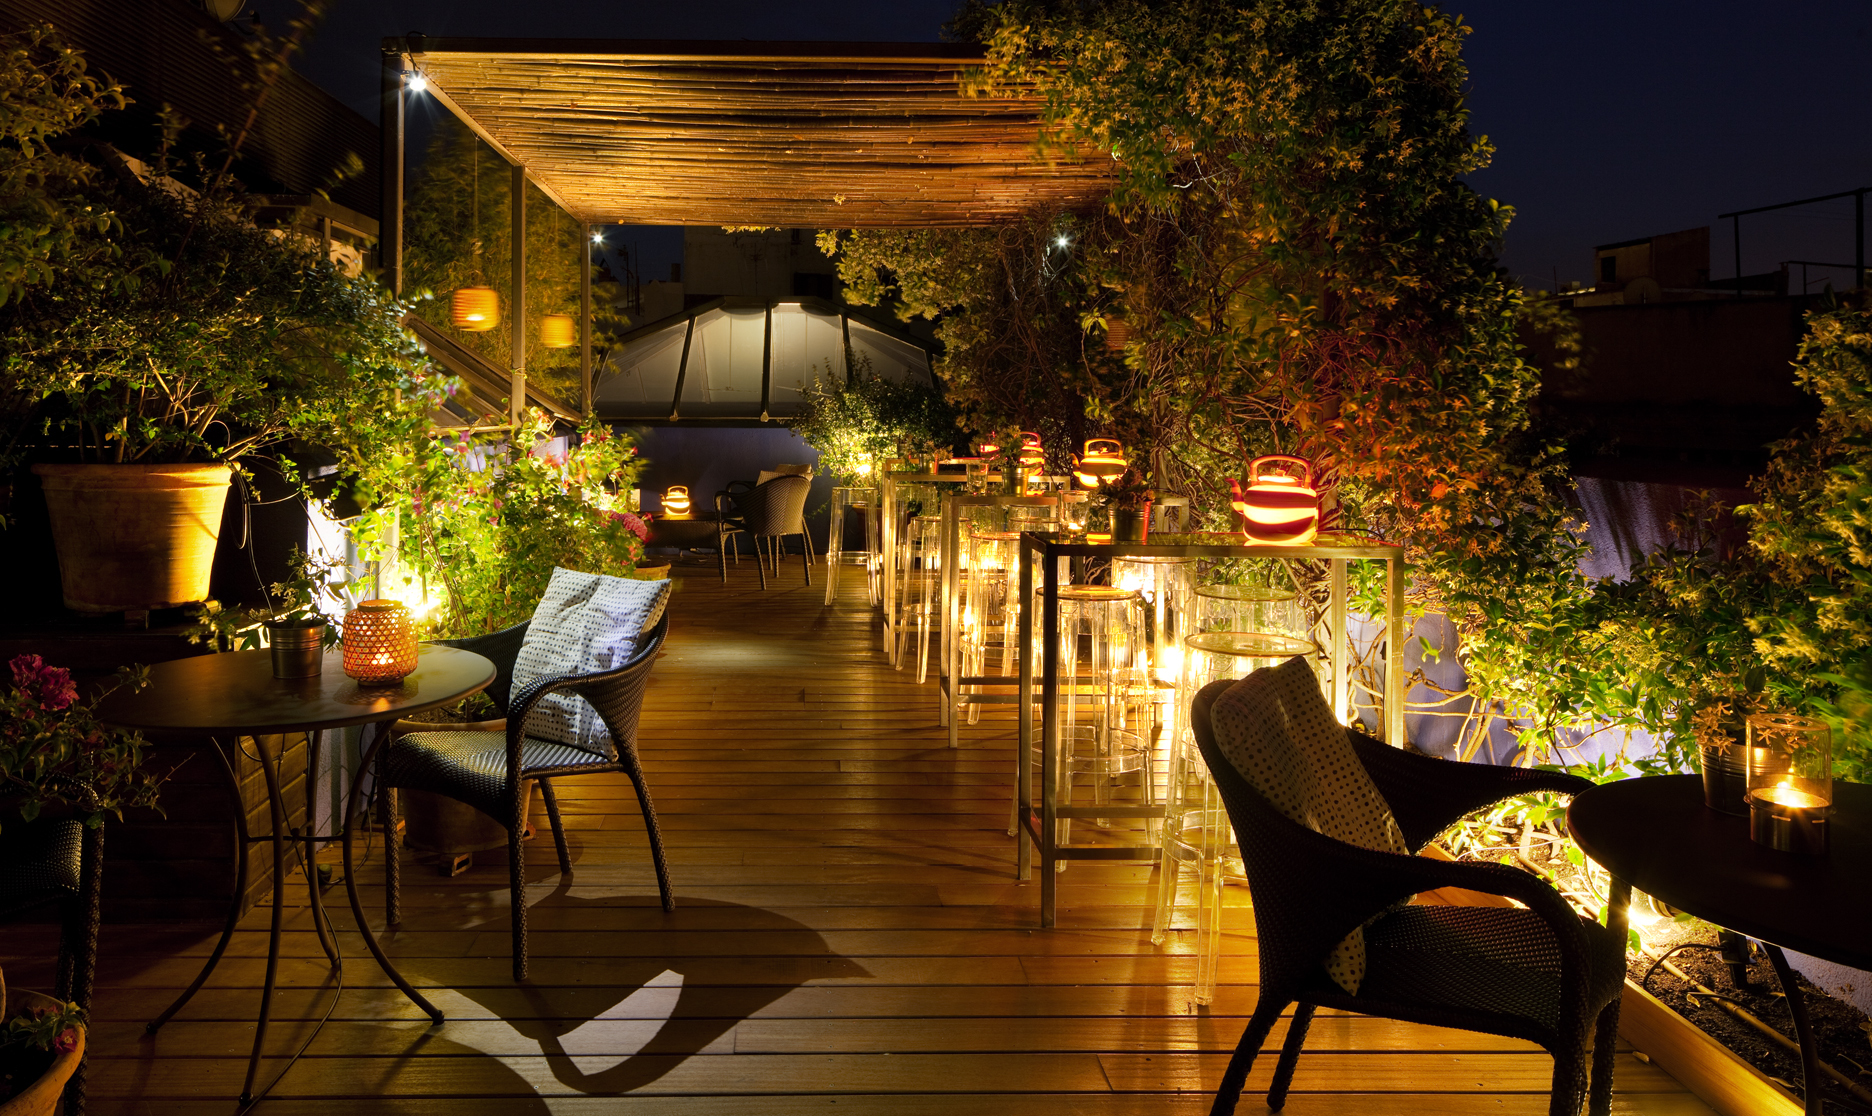 Barcelona hotel terrace week 2015 for Terrace hotel restaurant